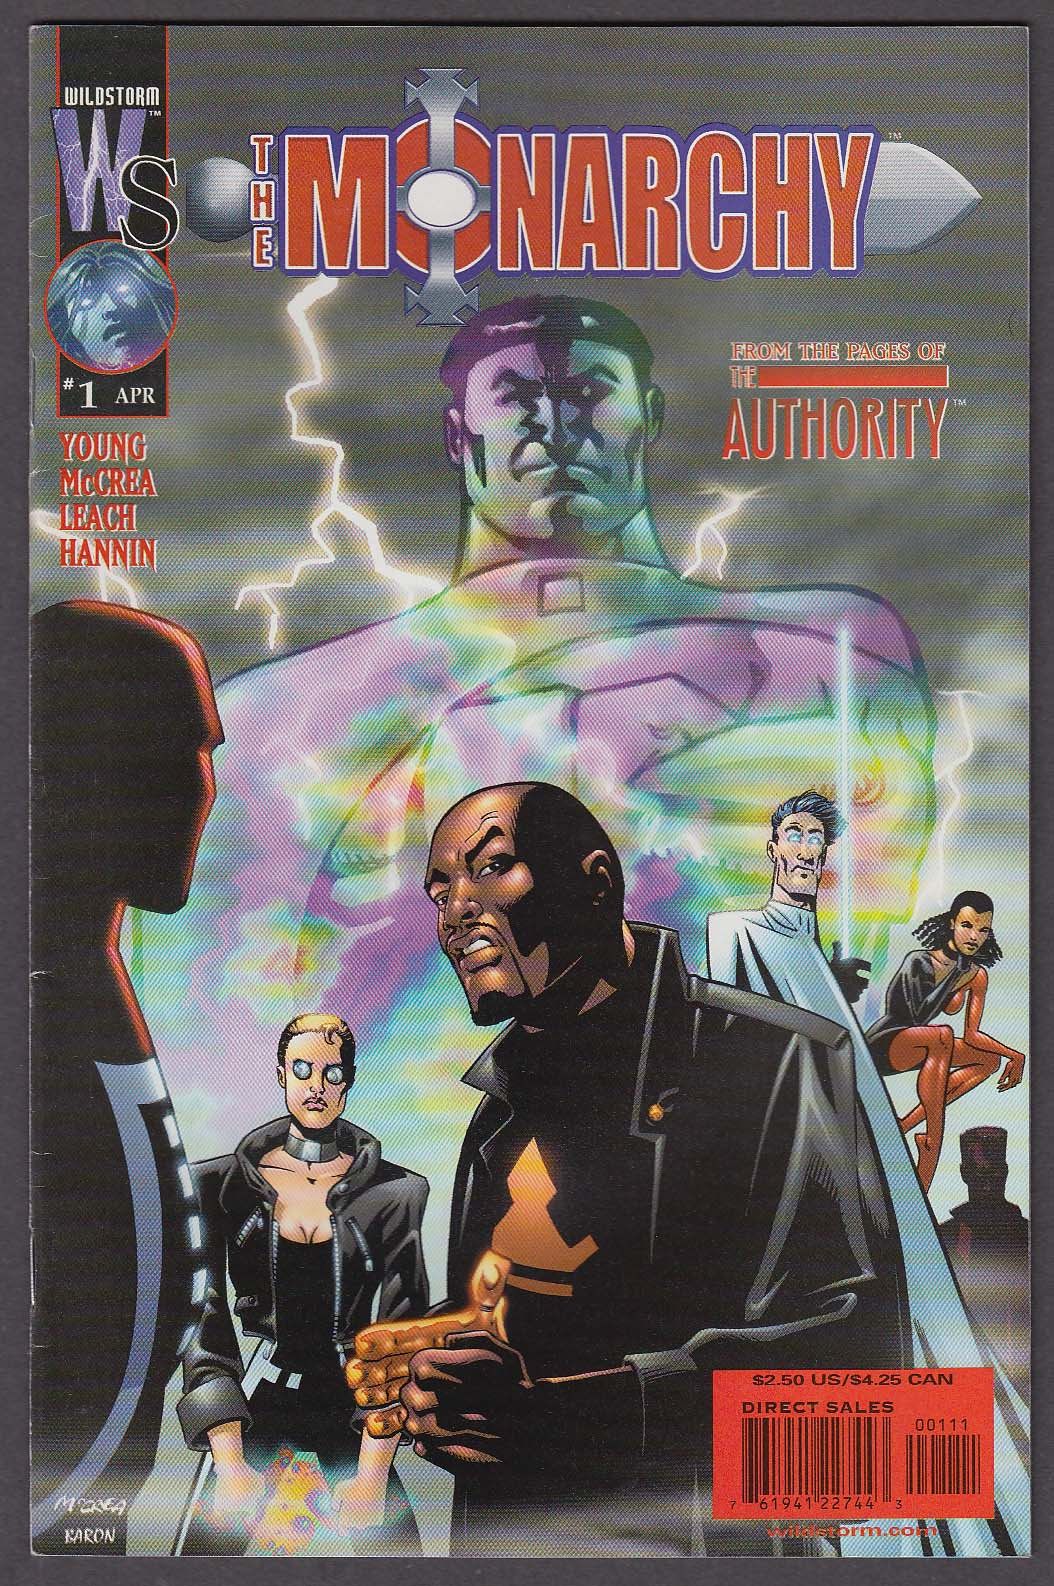 Image for The MONARCHY #1 WildStorm comic book 4 2001